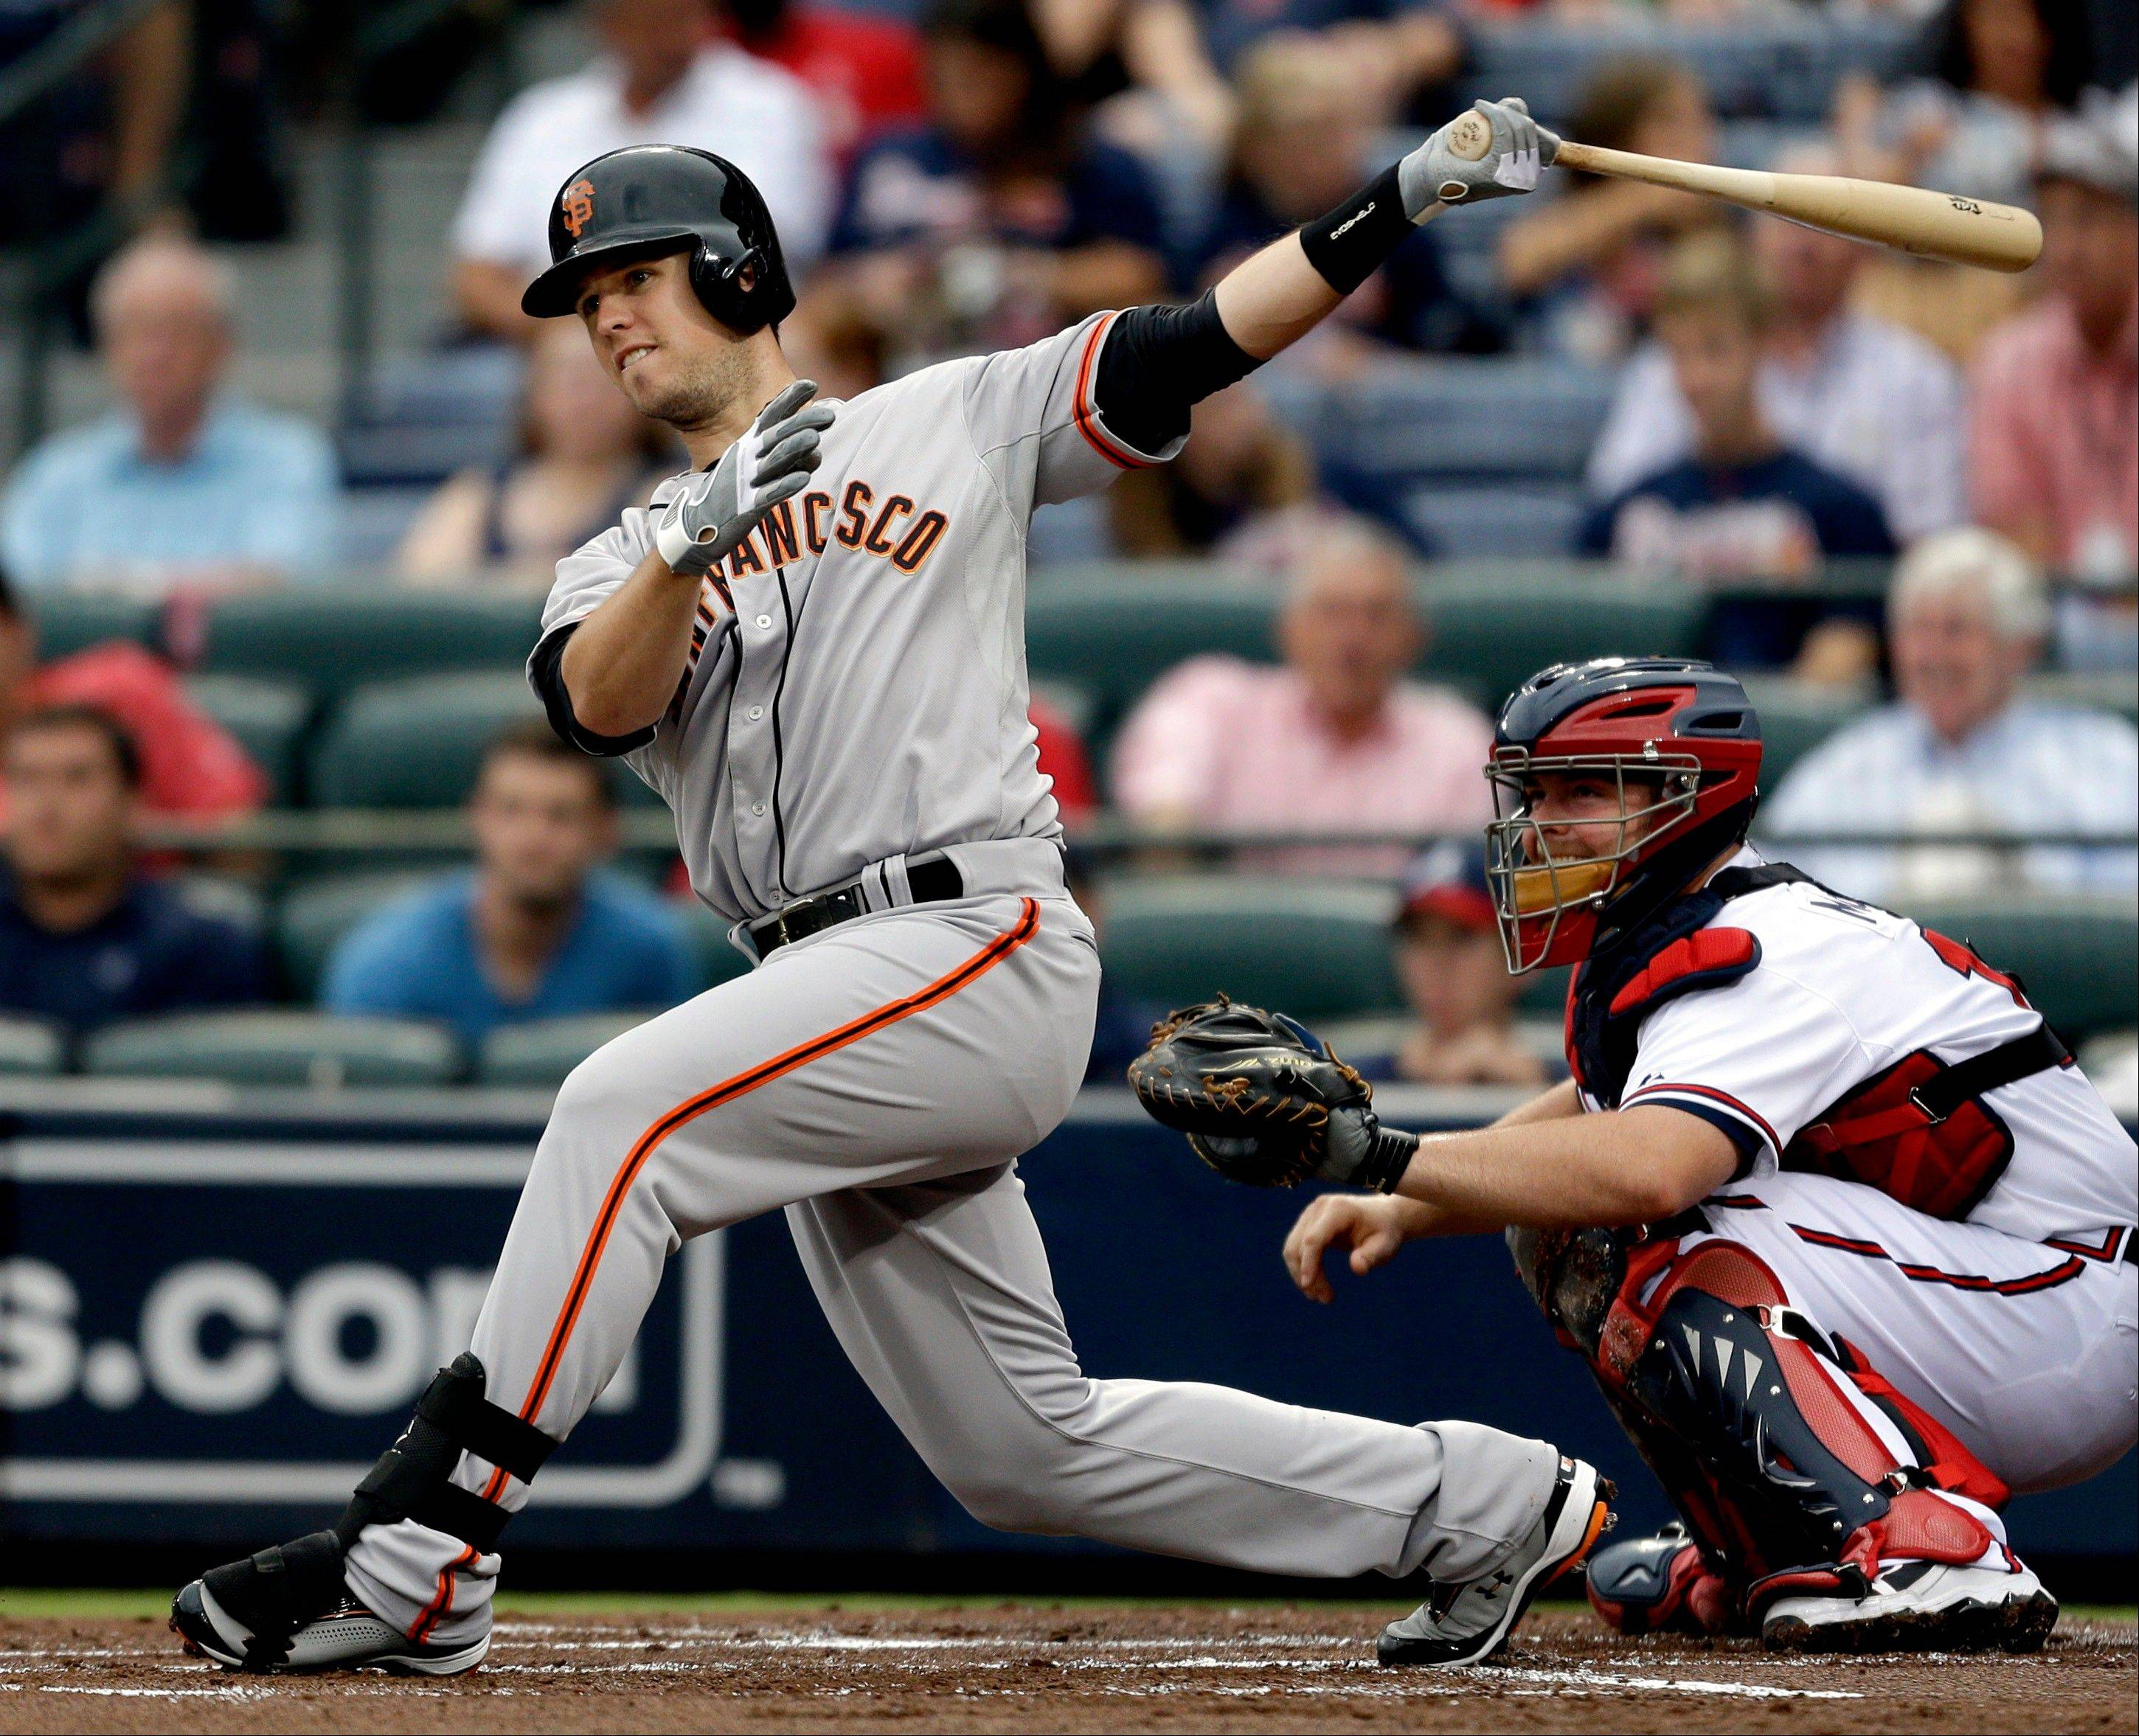 San Francisco Giants catcher Buster Posey, left, doubles to score teammate Gregor Blanco Tuesday during the first inning against the Atlanta Braves in Atlanta.